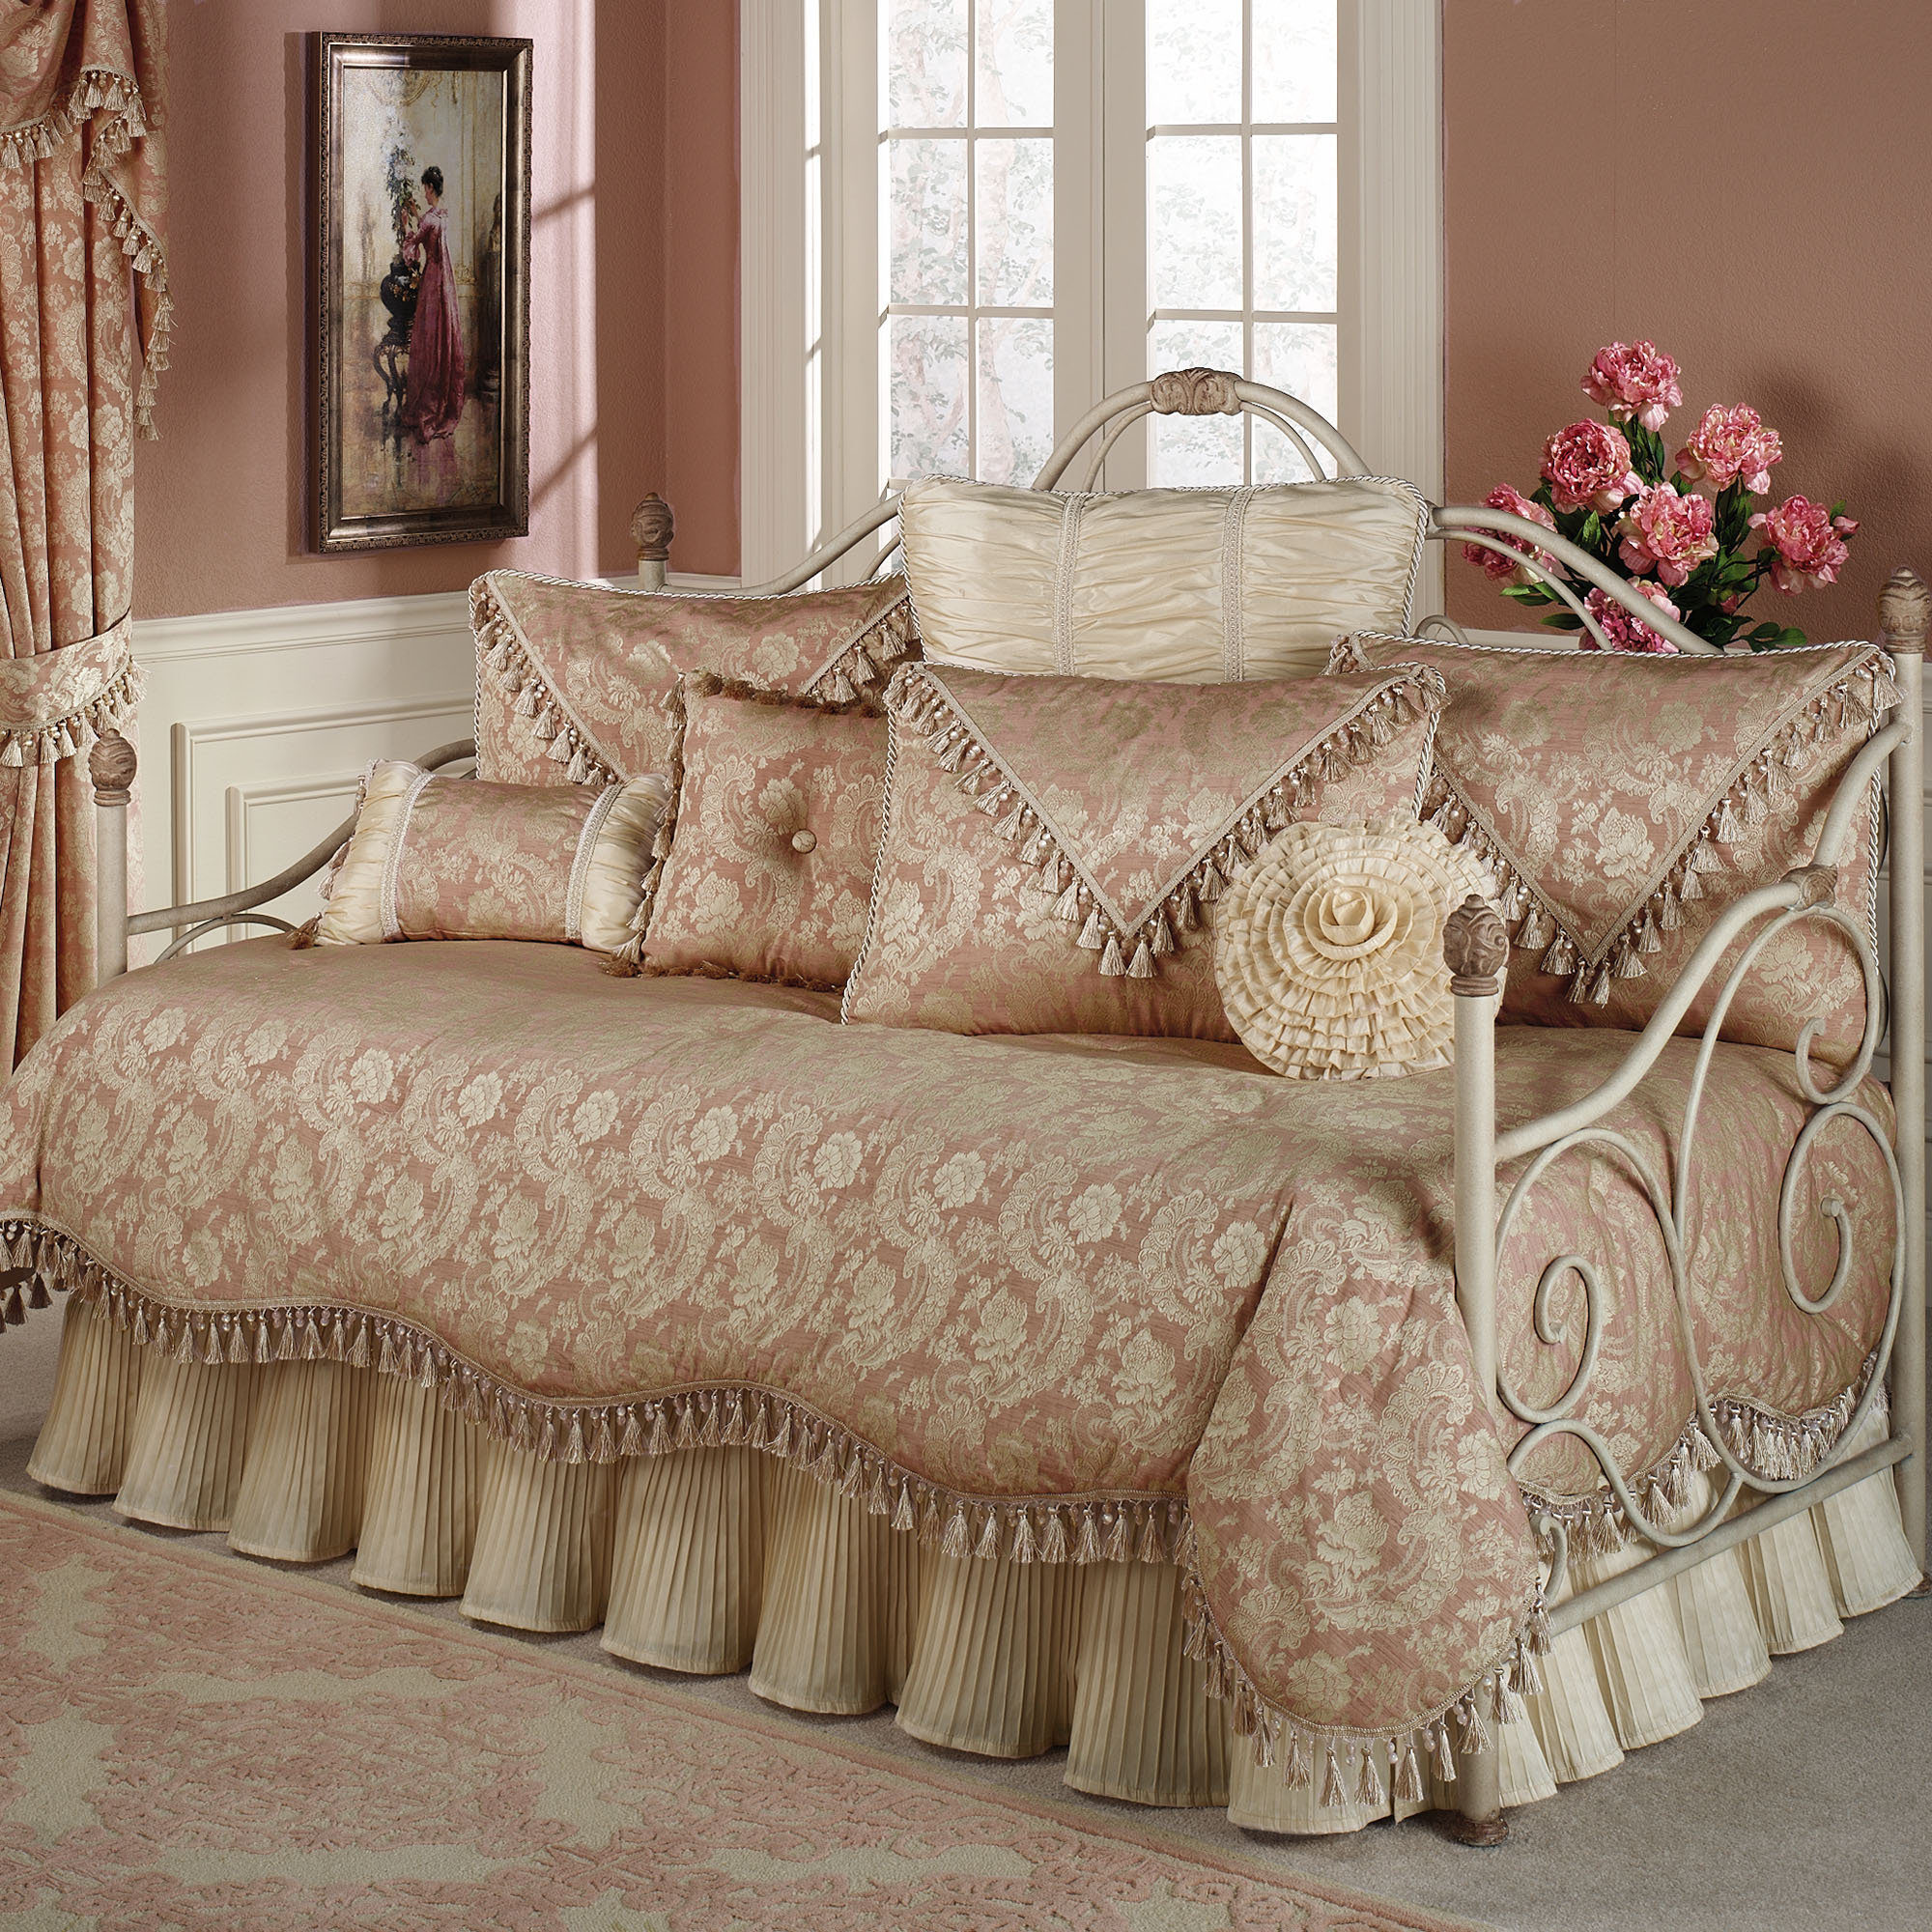 Black daybed bedding sets